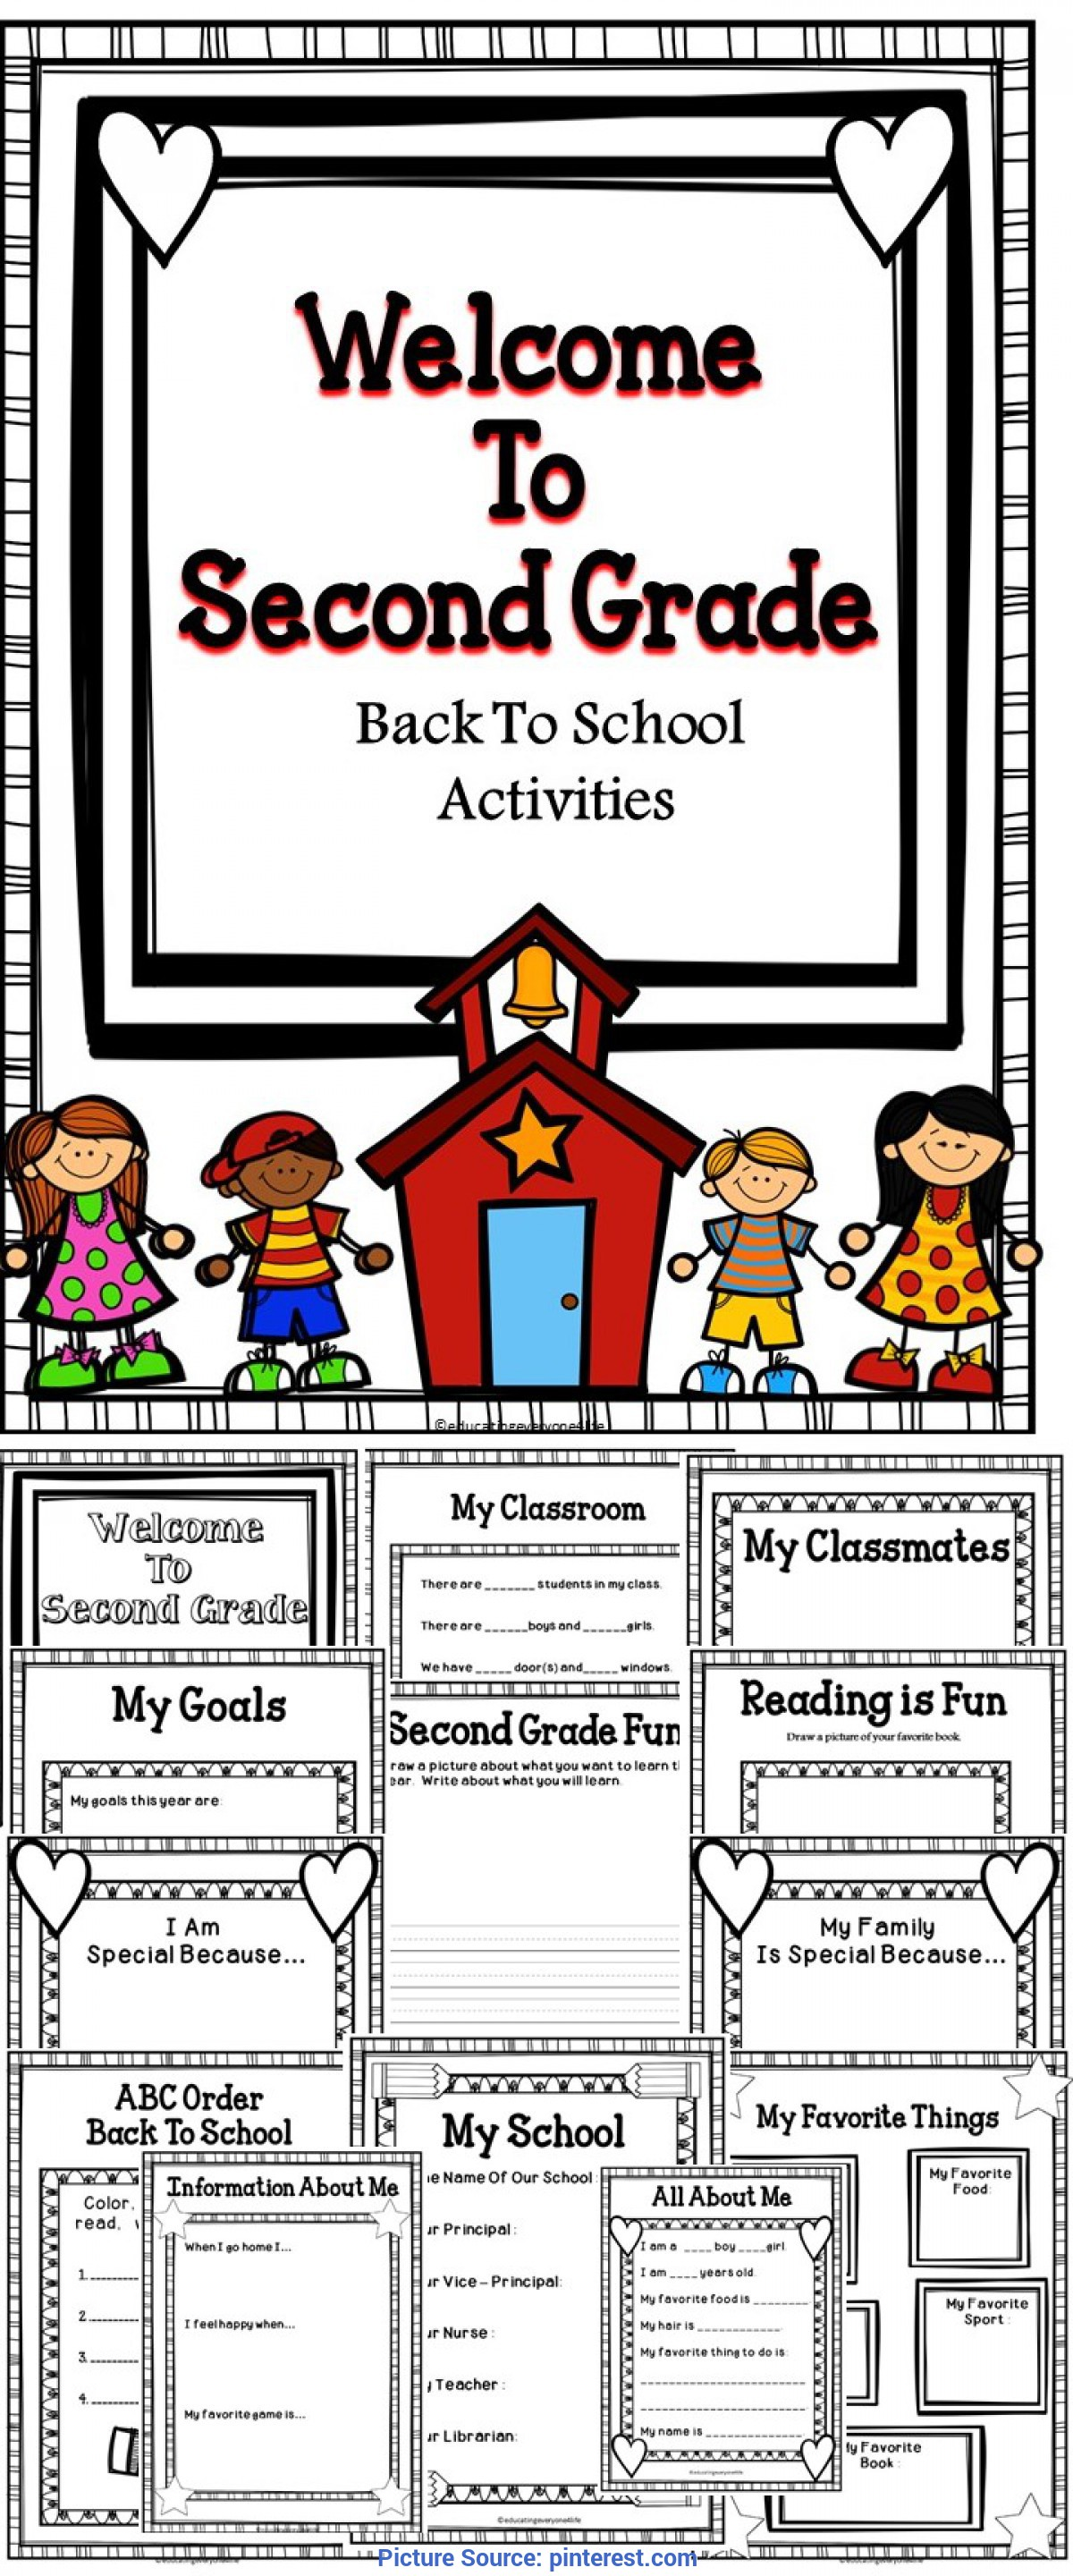 Newest Example Of Lesson Plan In Science Grade 5 Aiou B Ed M Ed Work Shop Lesson Plan Books